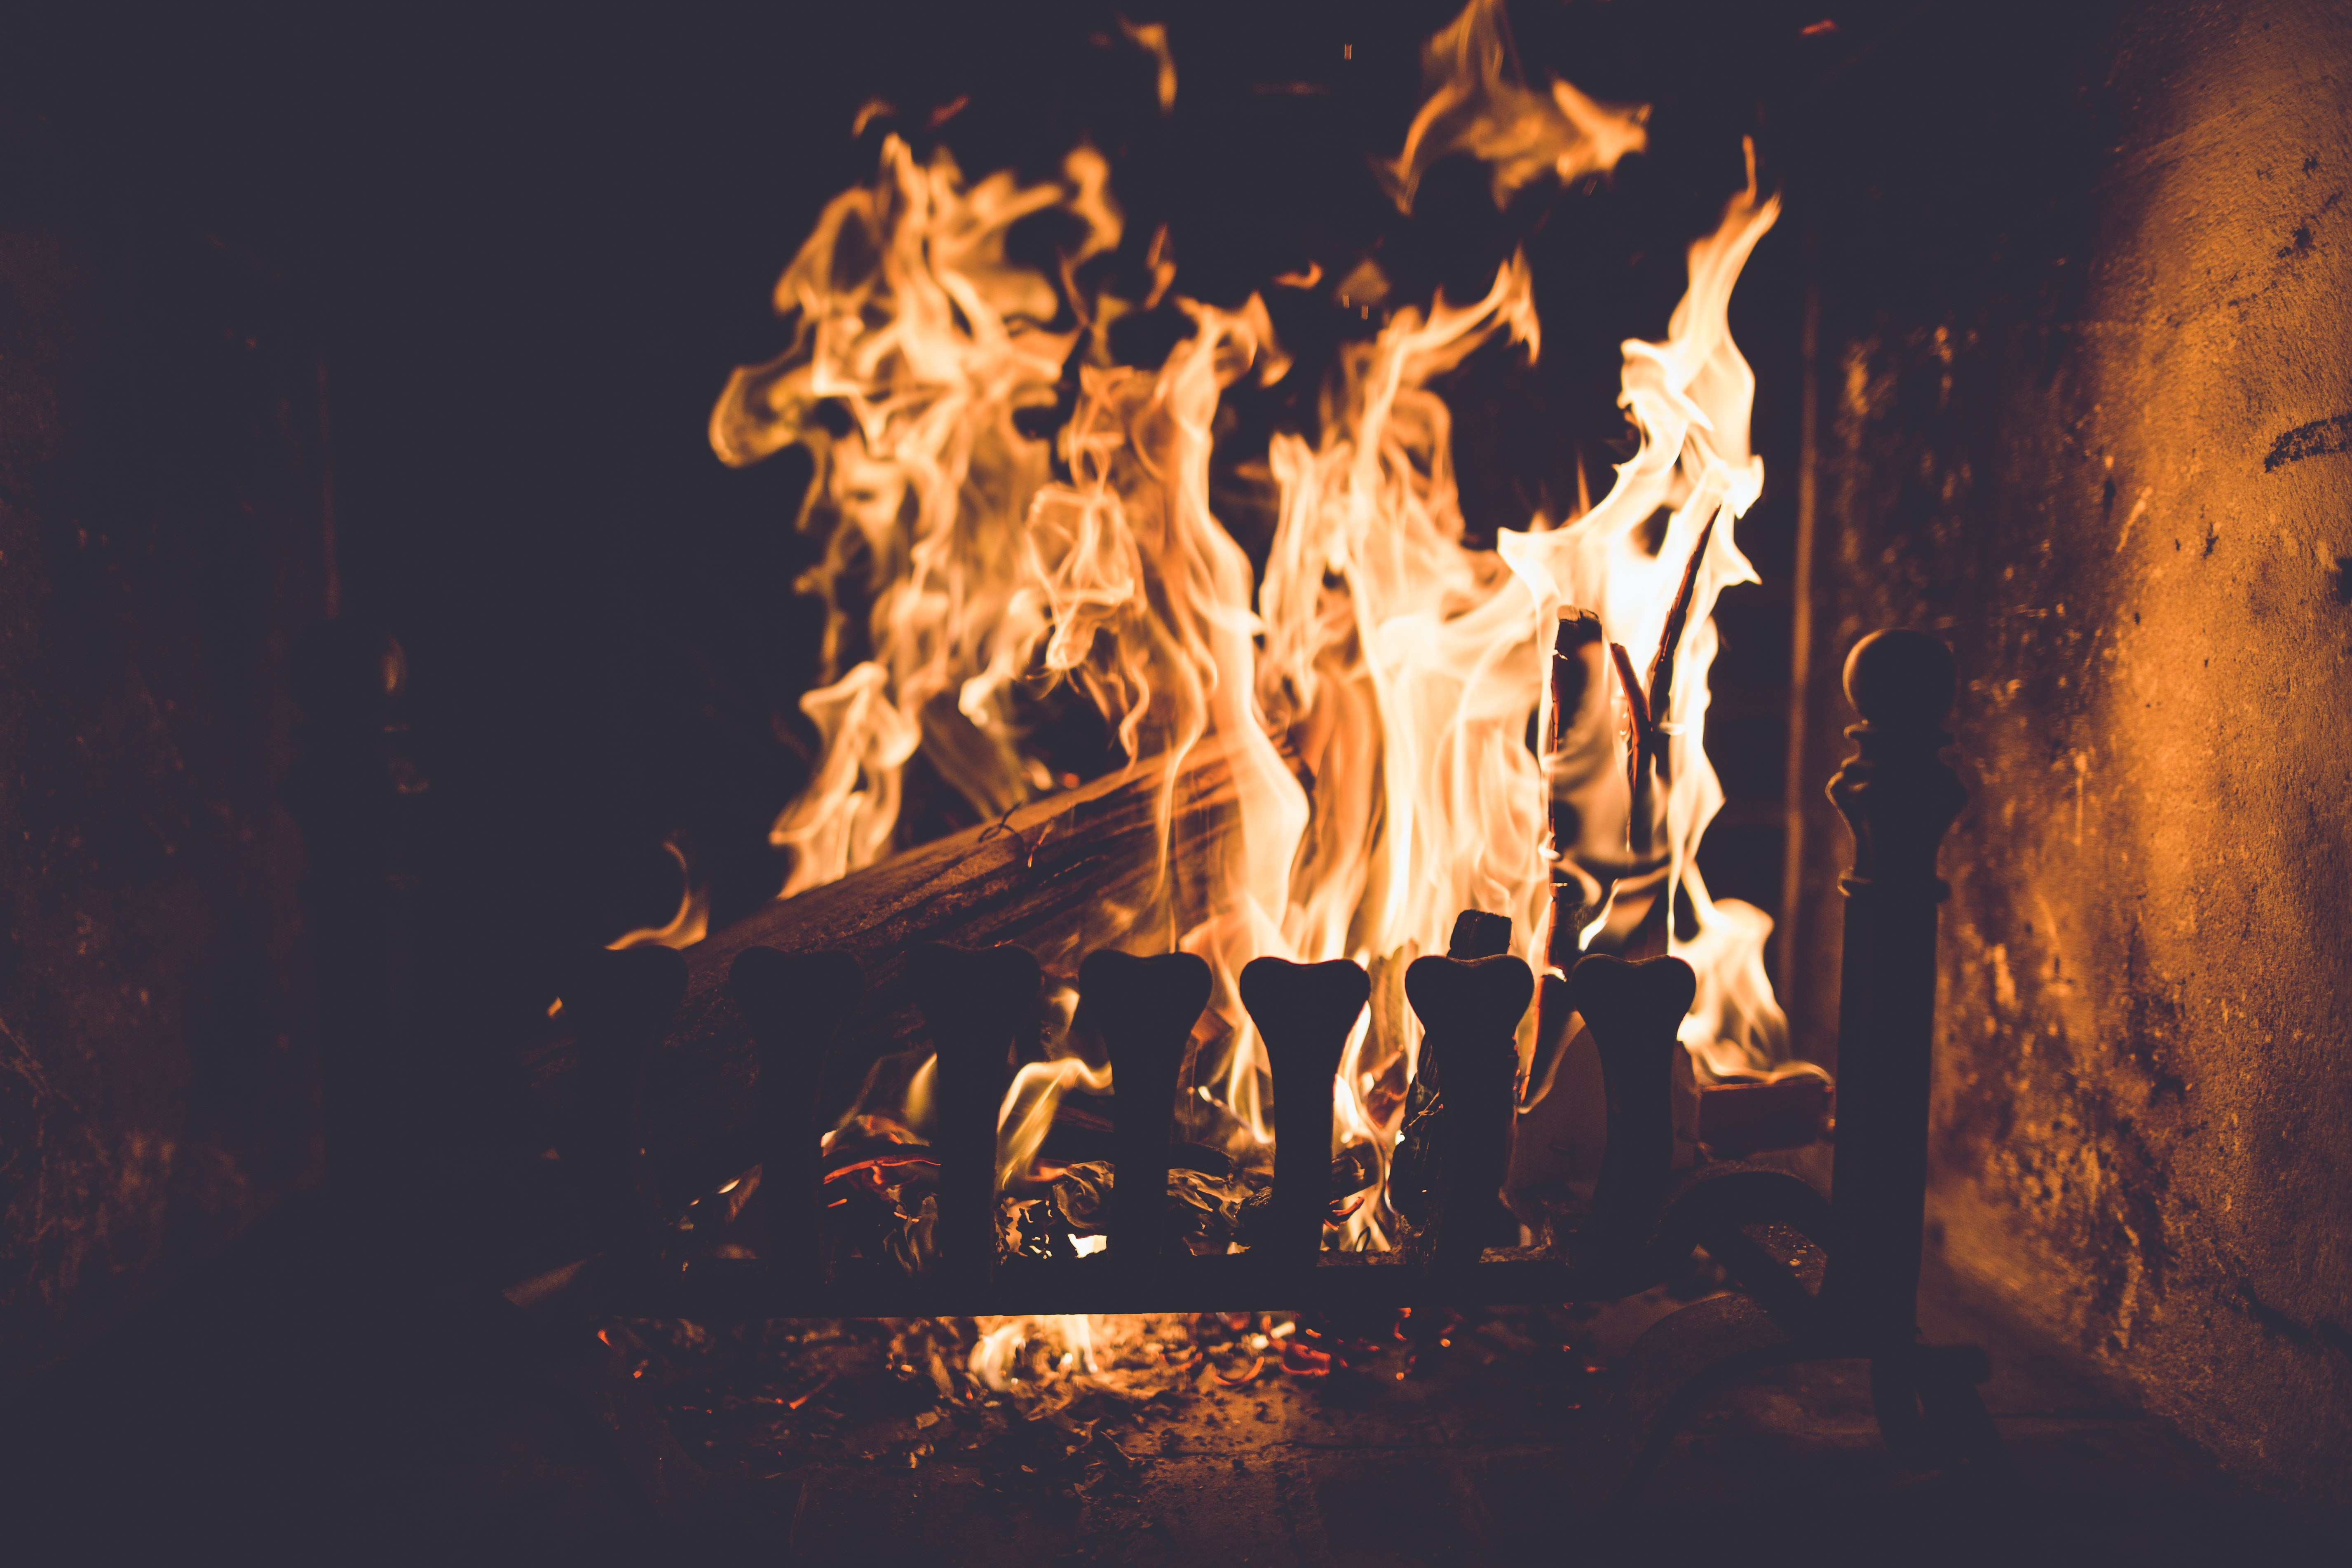 Flames burn a log in an indoor fireplace